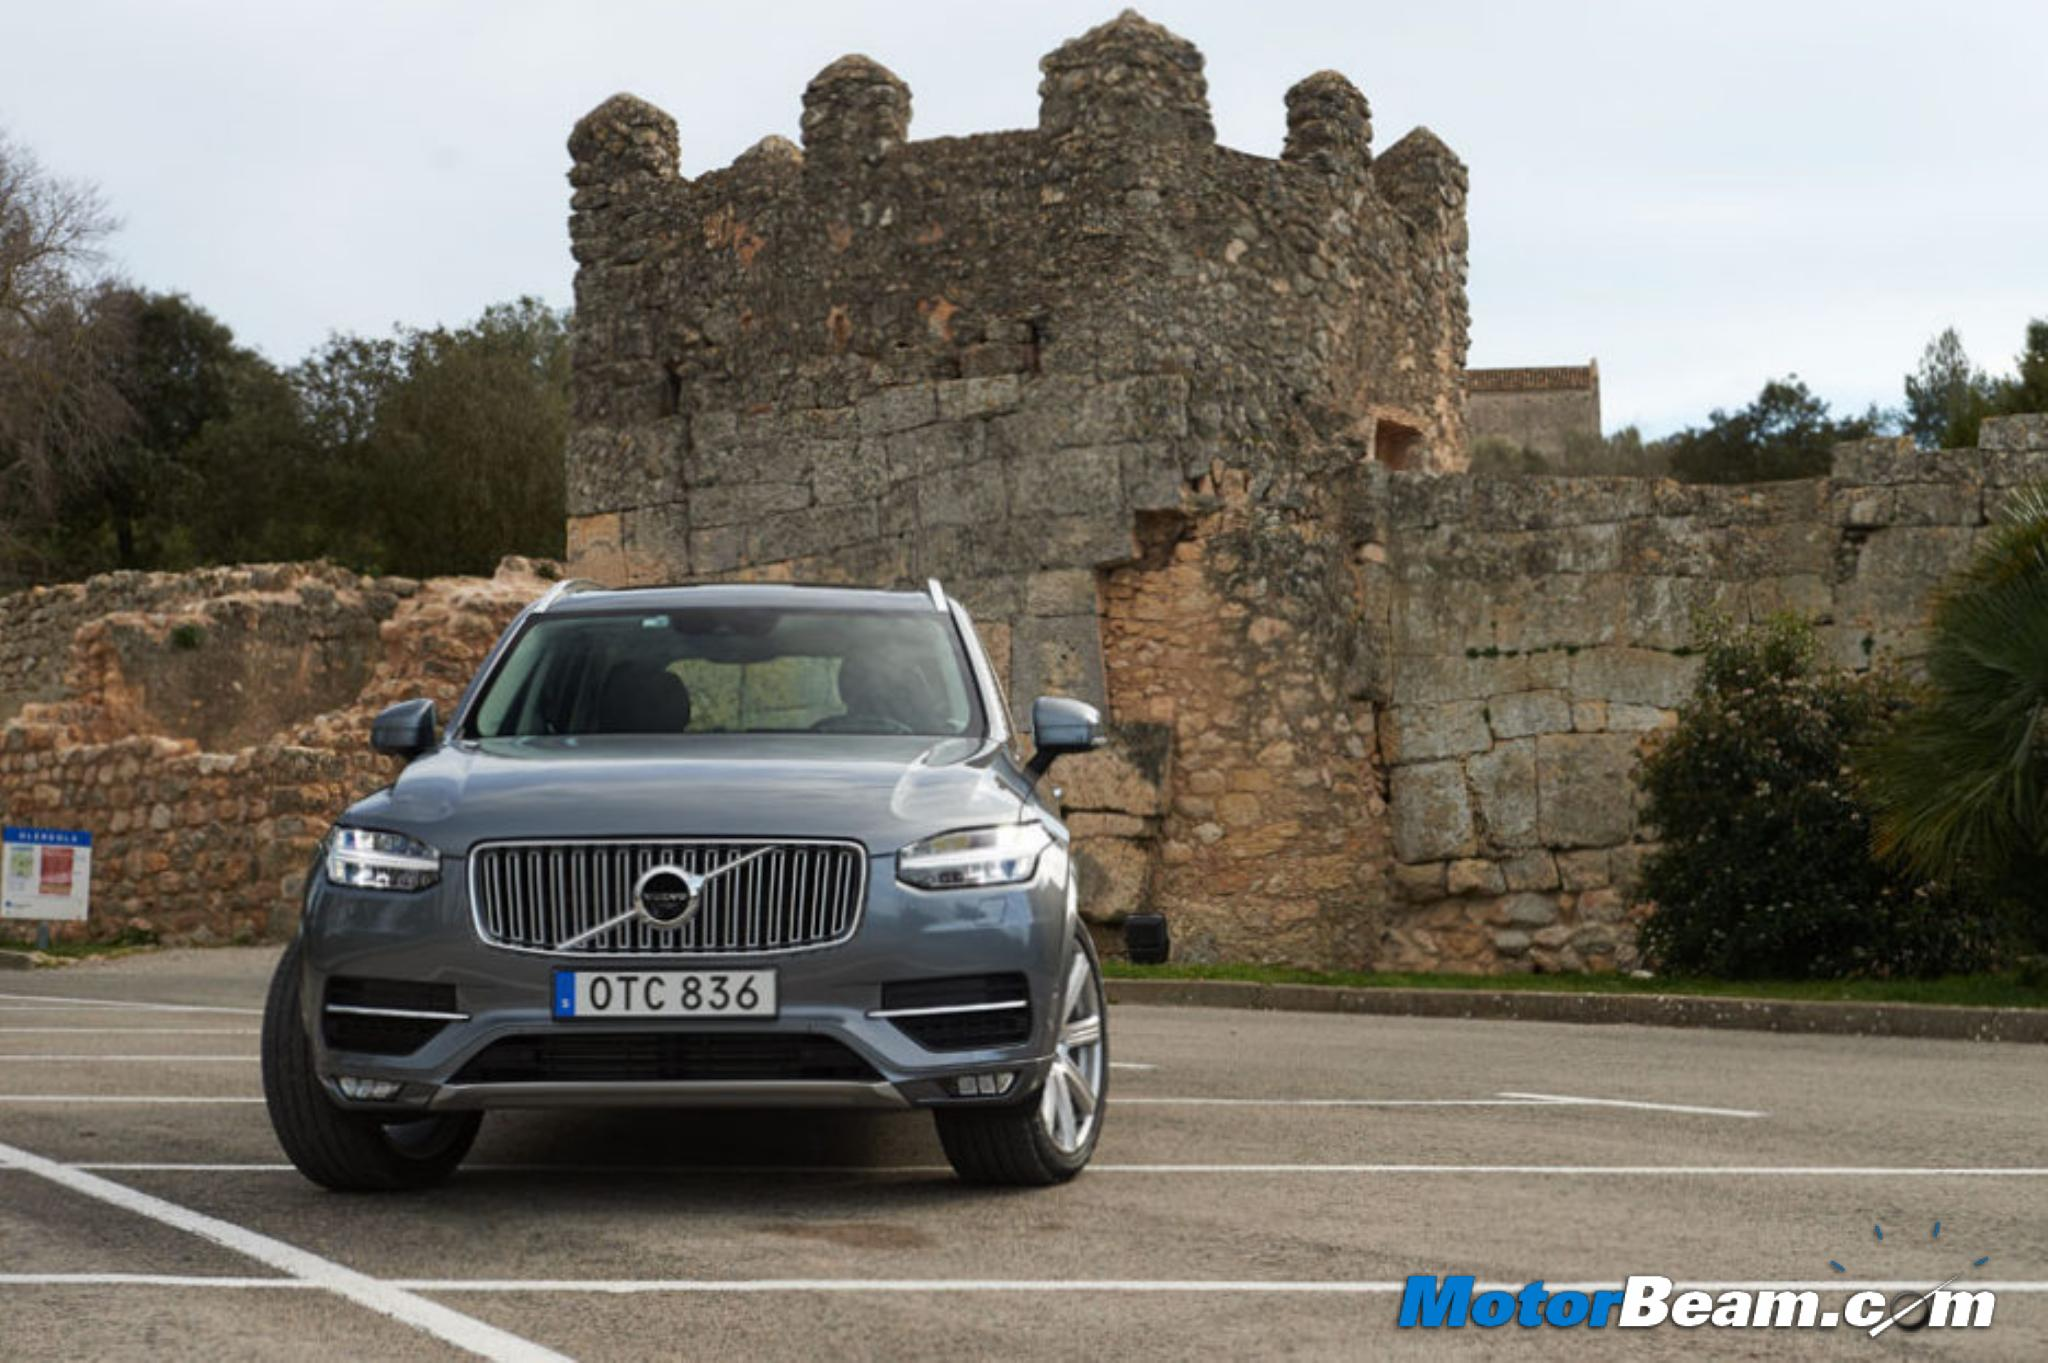 Volvo Considering Local Production In India, Decision By 2016